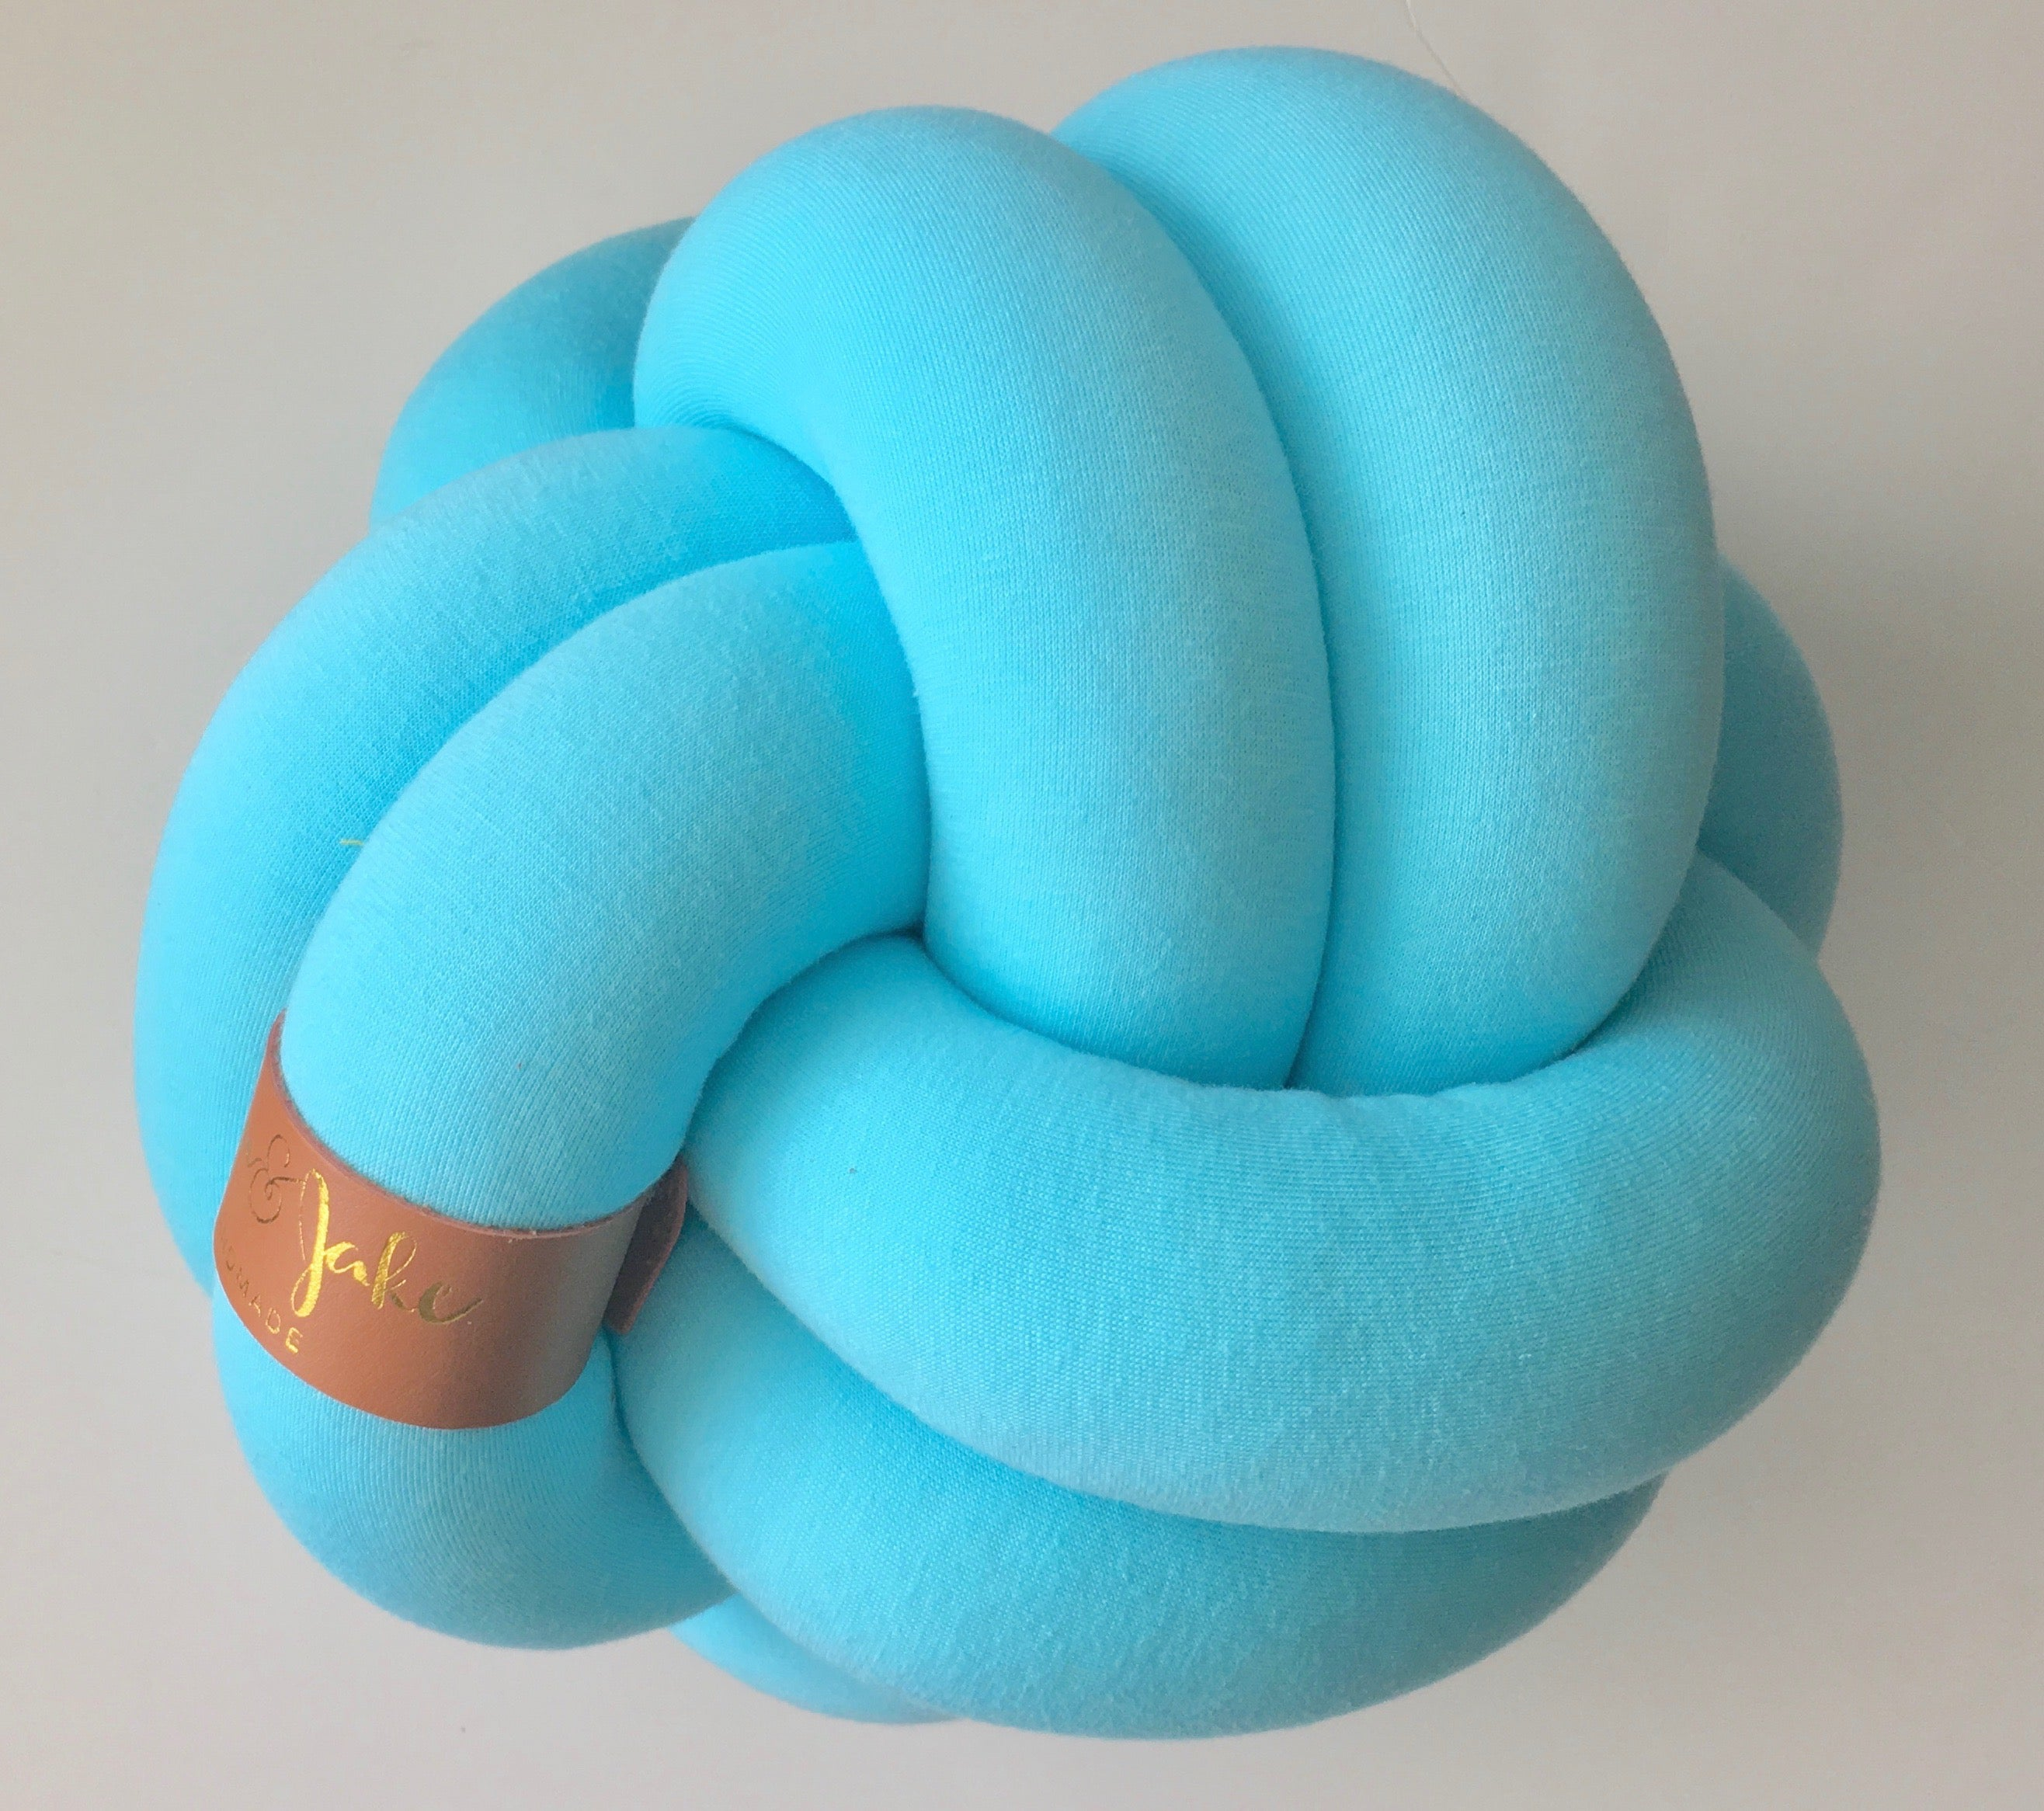 Aqua | Medium Sphere Knot Pillow - See more Knot Pillows & Cushions at JujuAndJake.com